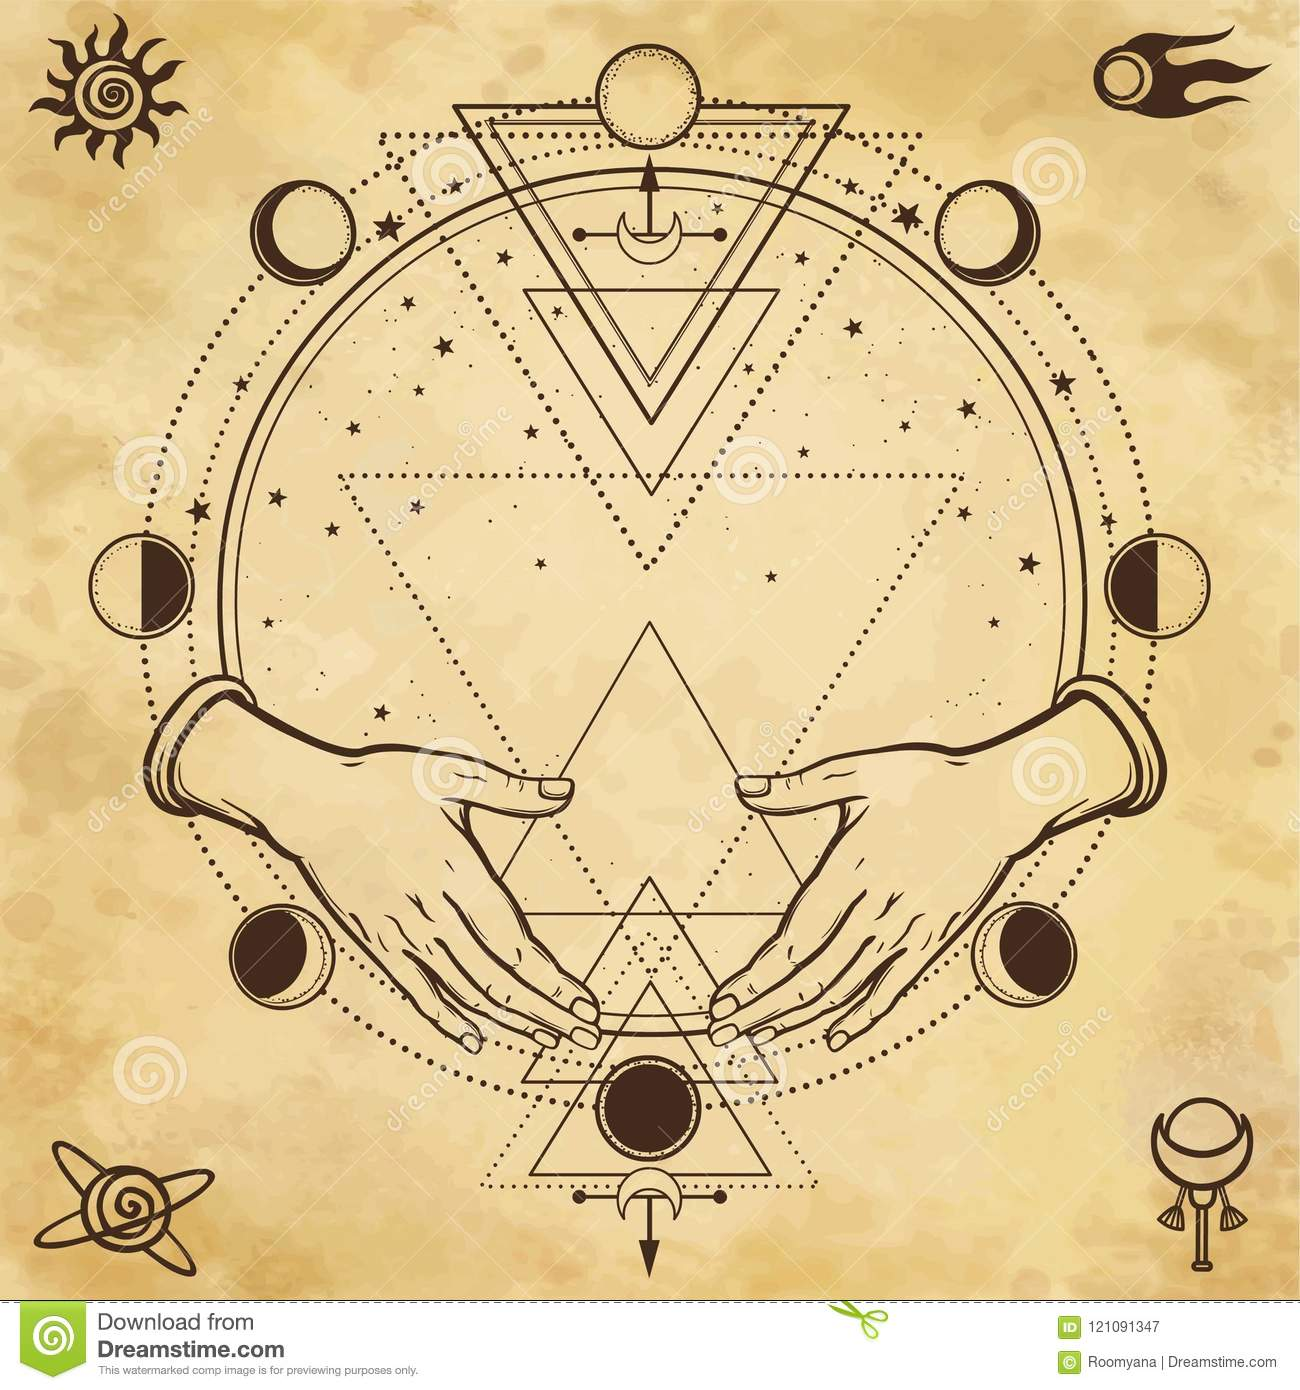 Mysterious drawing: human hands hold a magic circle, sacred geometry. Space symbols.